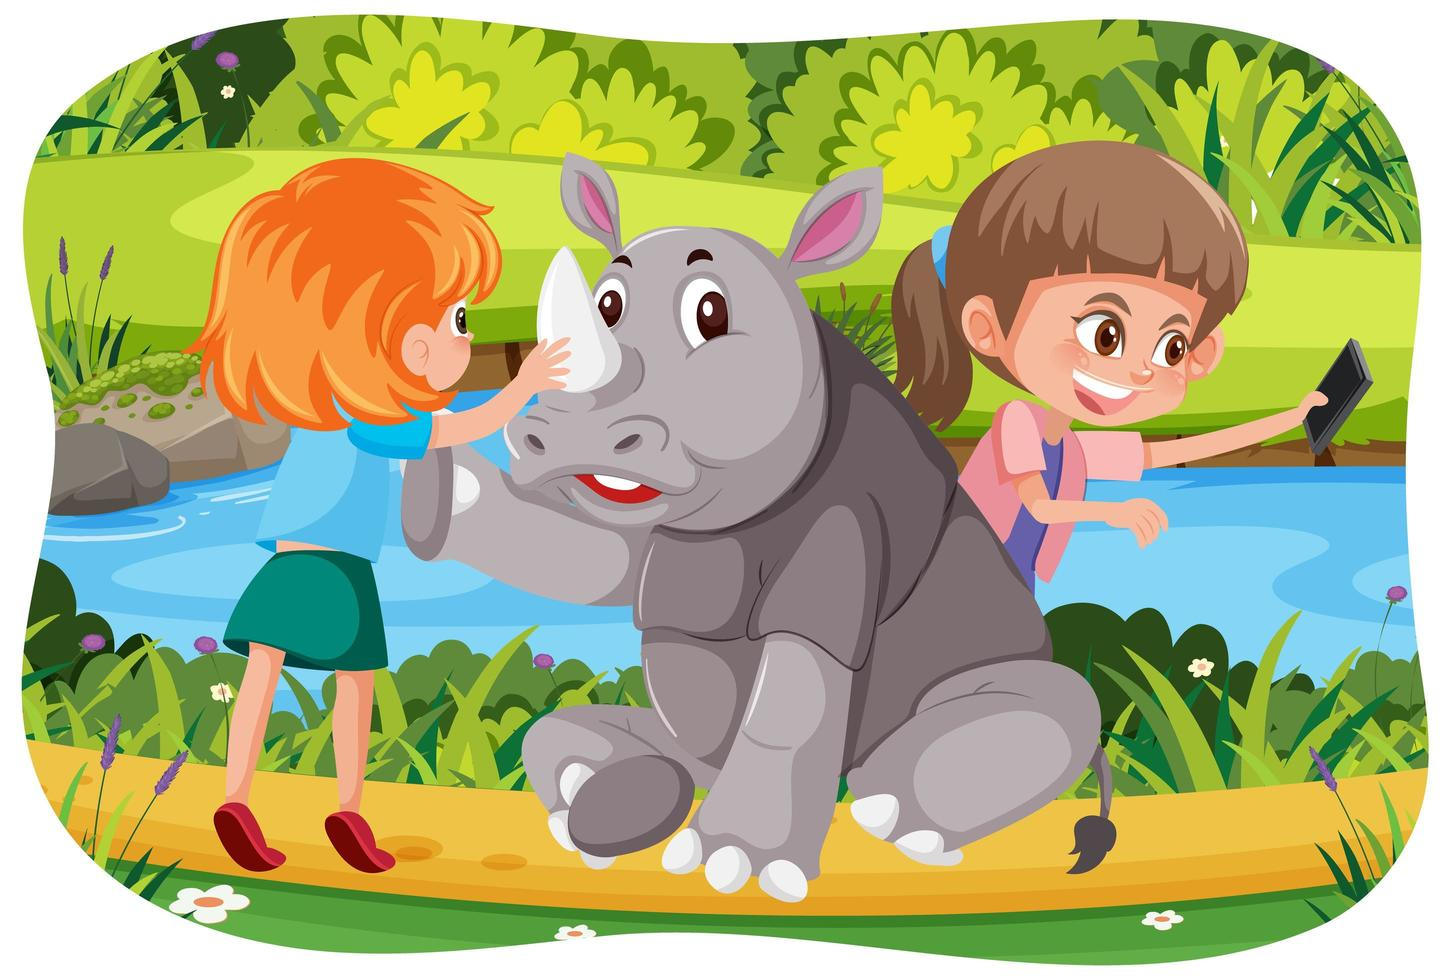 Happy kids with animals in nature background vector